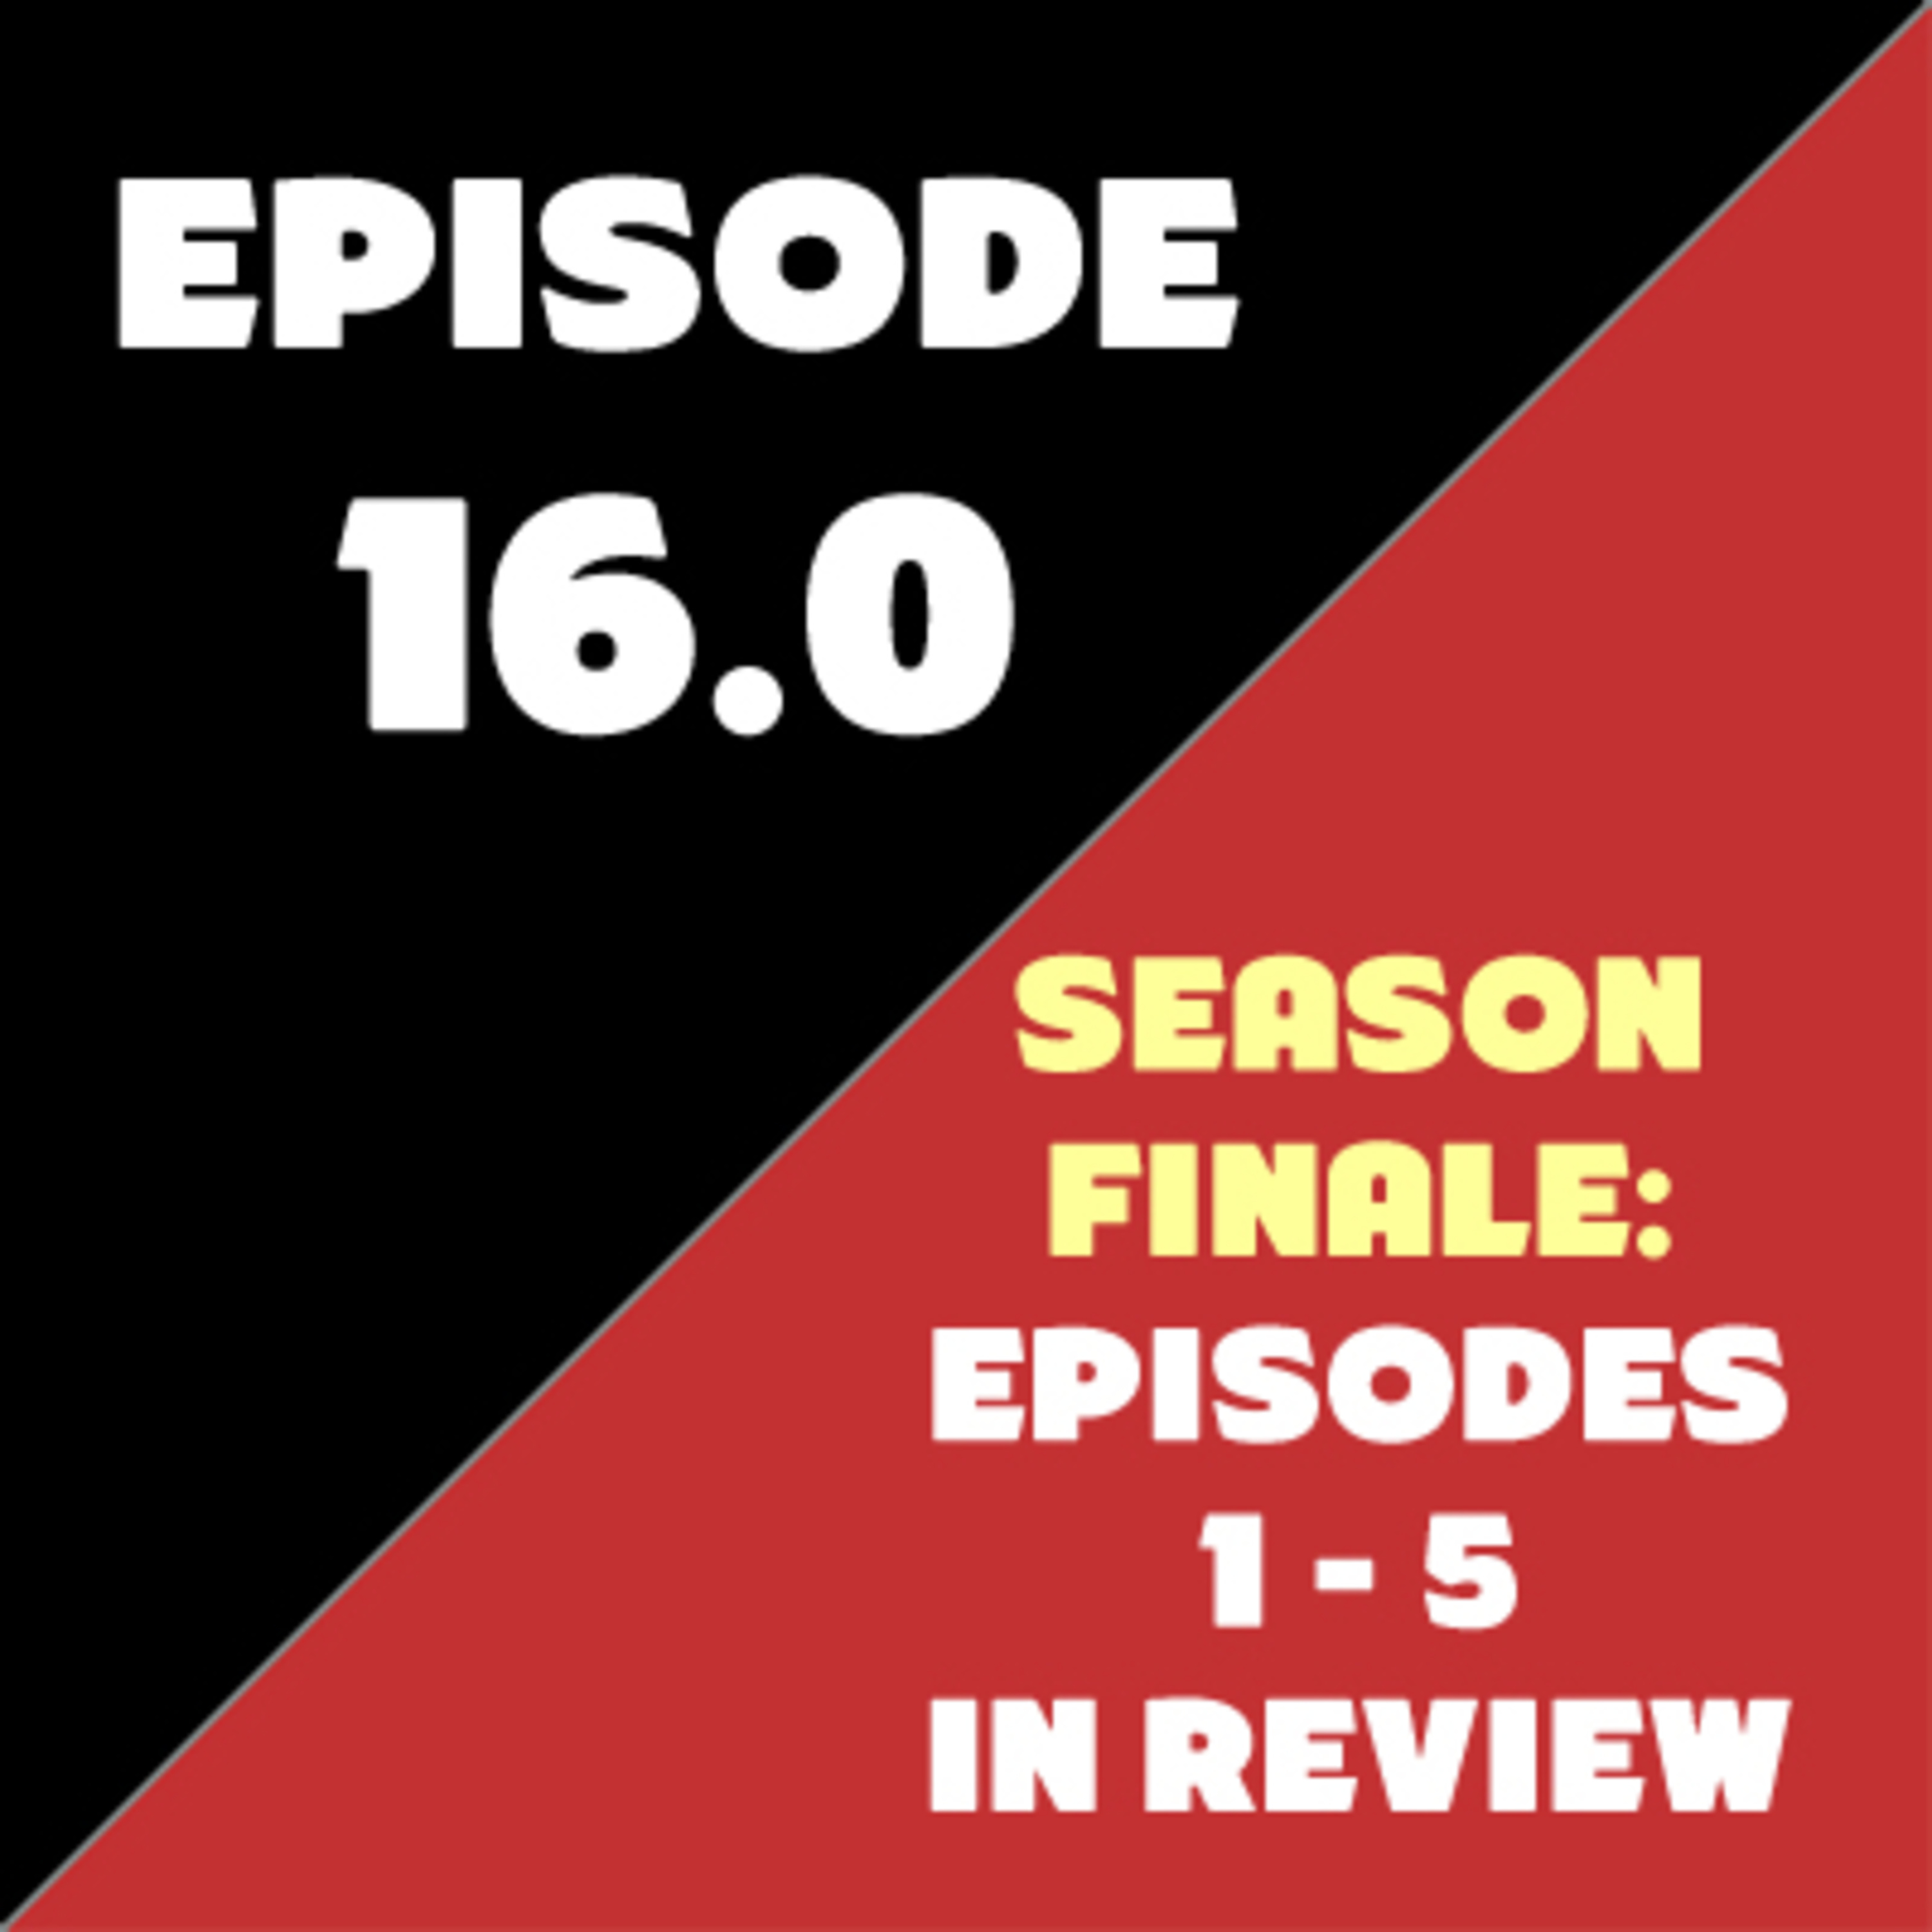 Episode 16 - Season Finale - Episodes 1 - 5 in Review